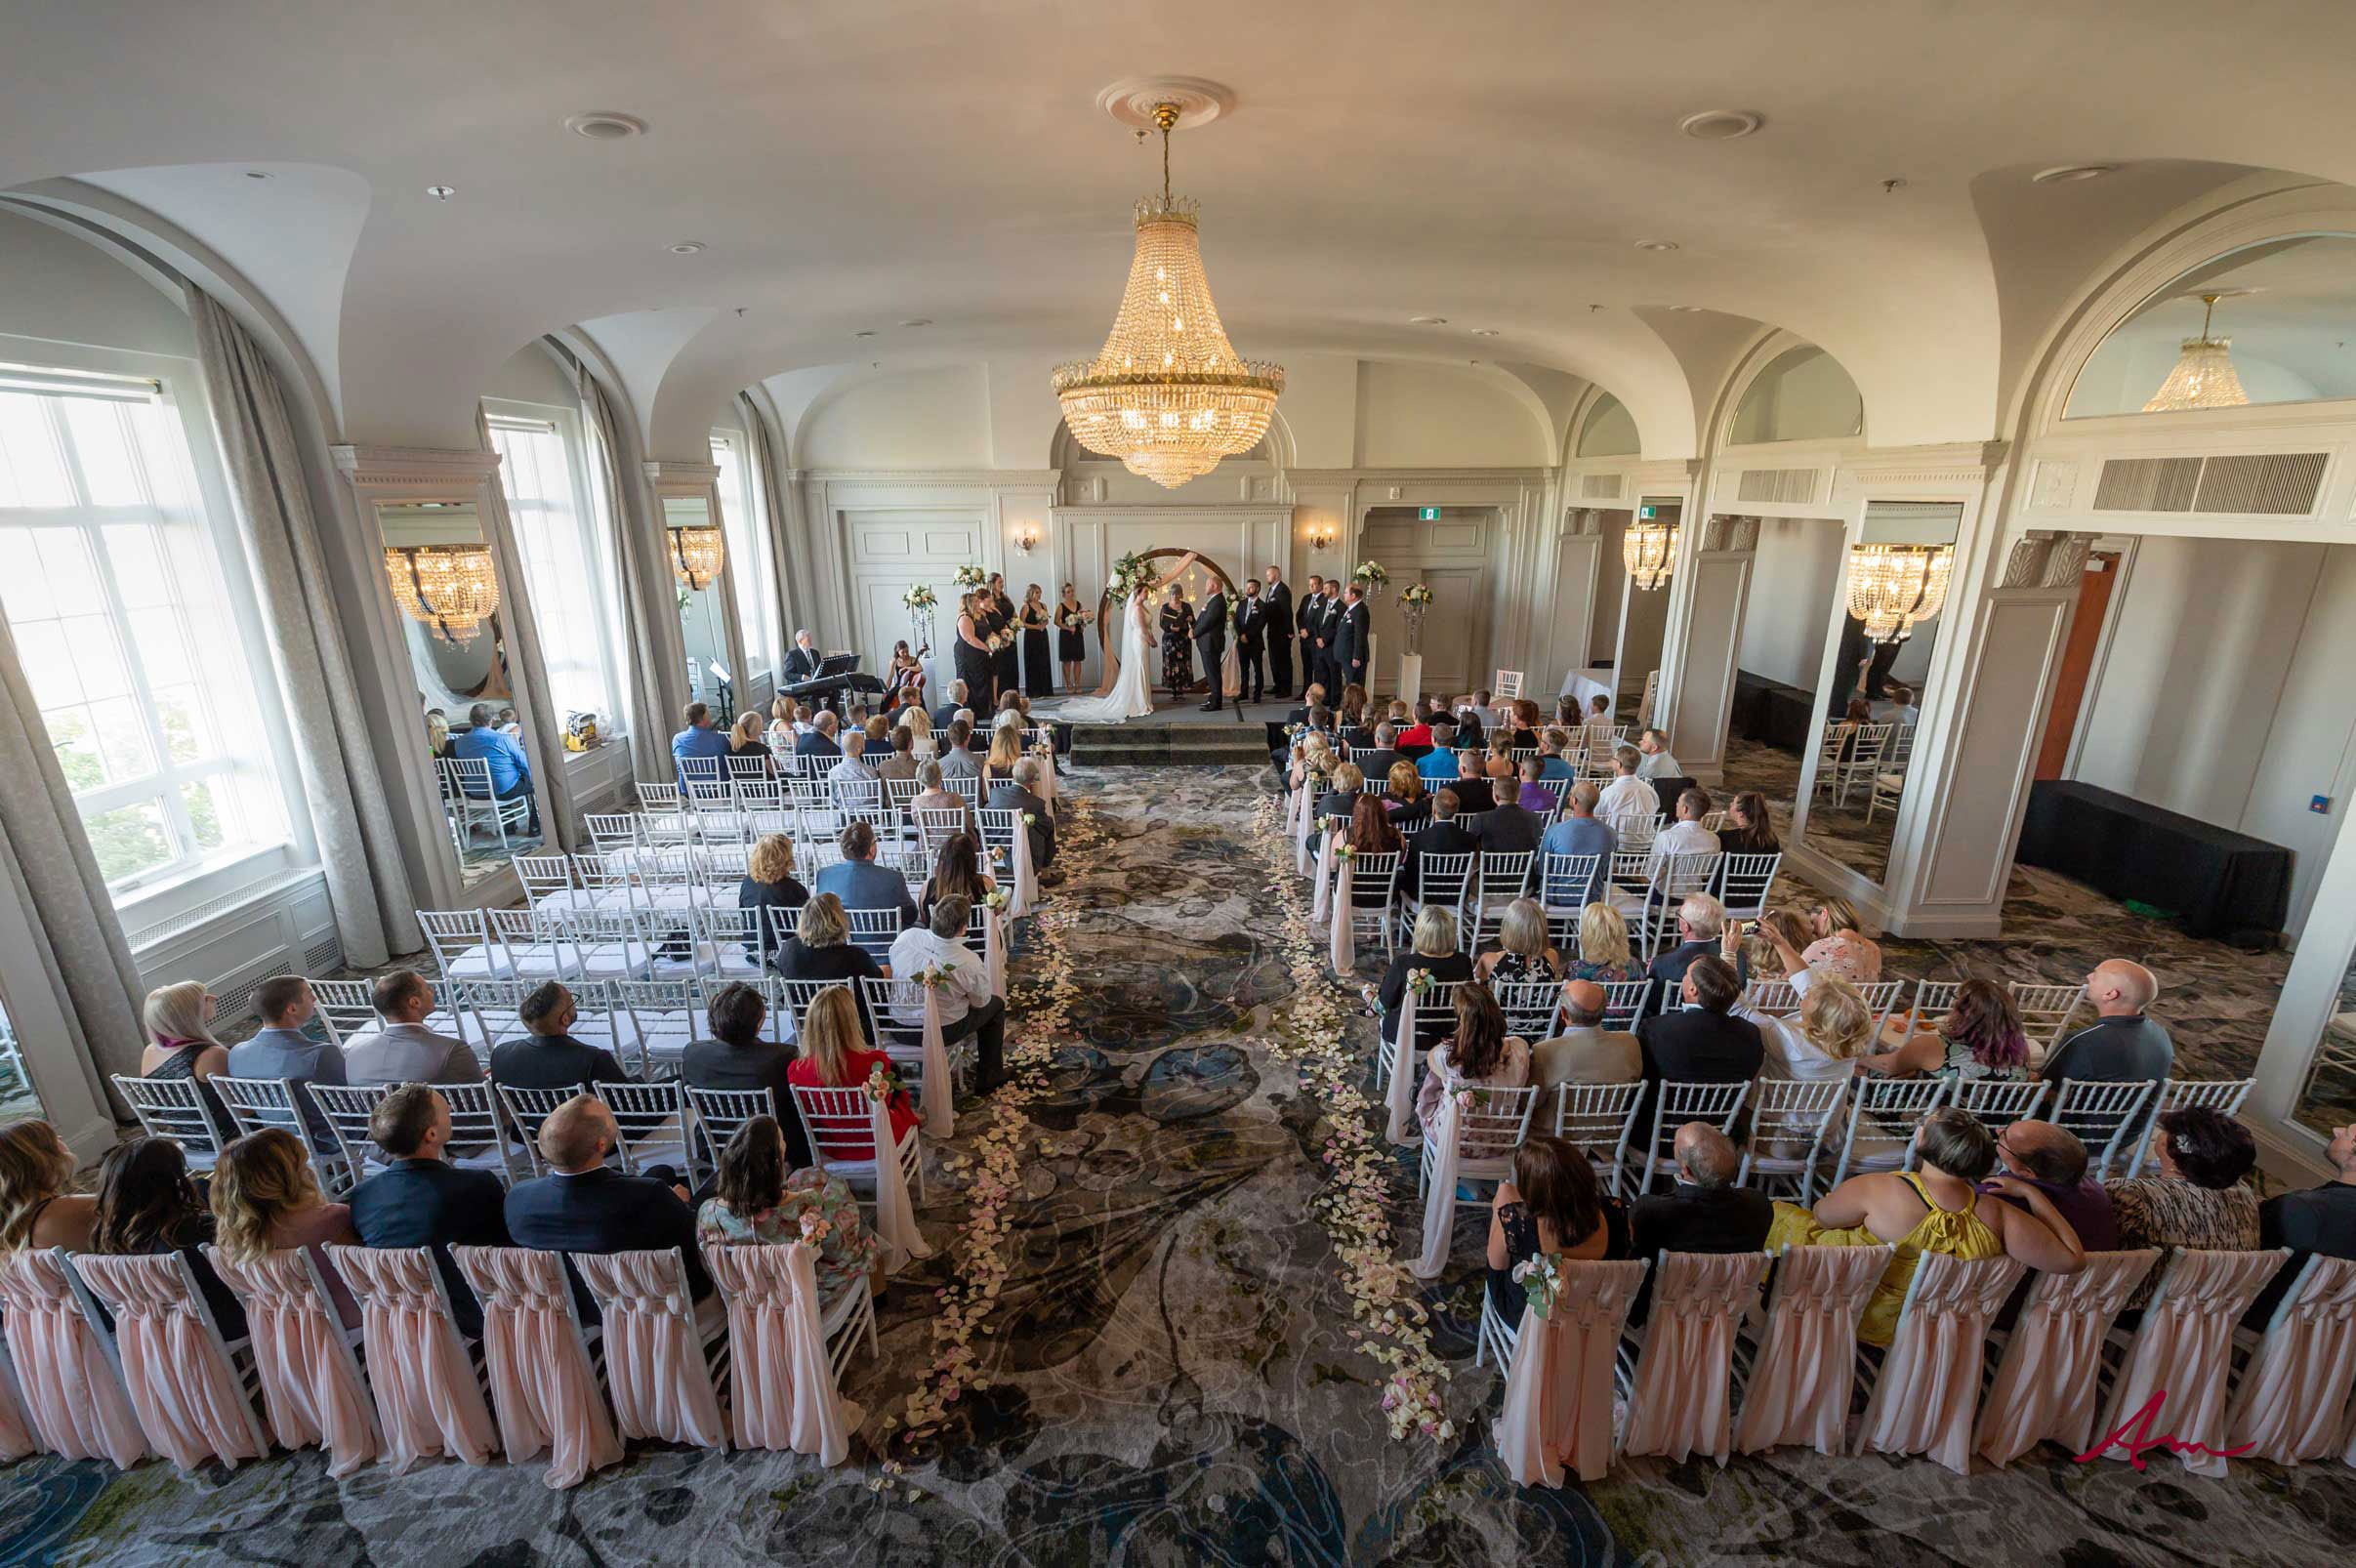 Gorgeous setting for a ceremony.